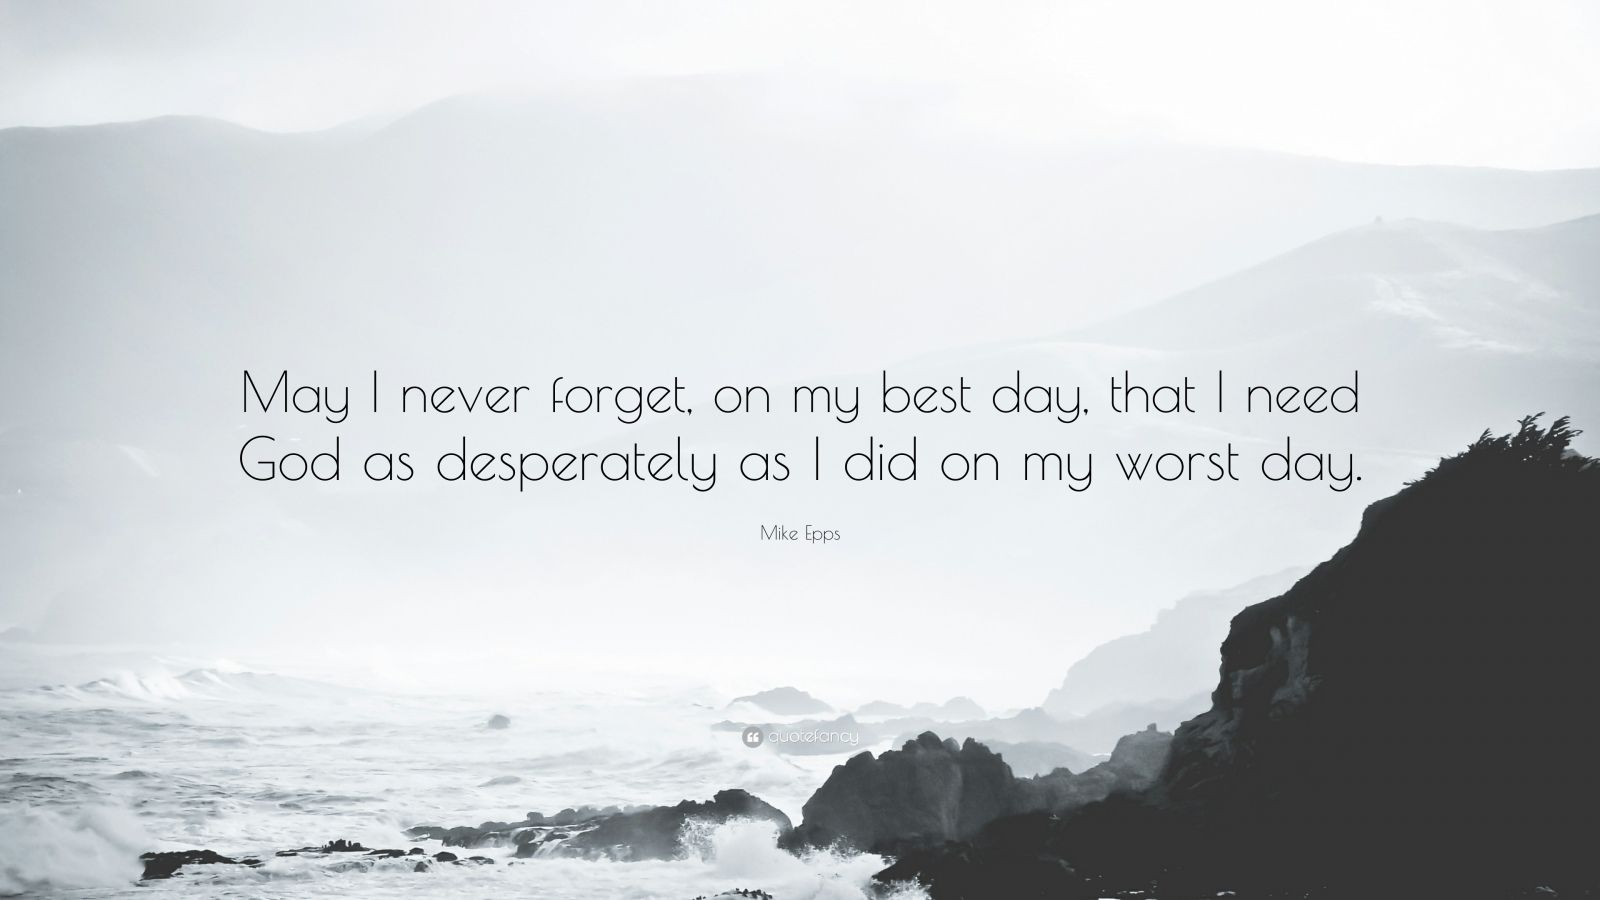 """Mike Epps Quote: """"May I never forget, on my best day, that I need God as desperately as I did on my worst day."""""""